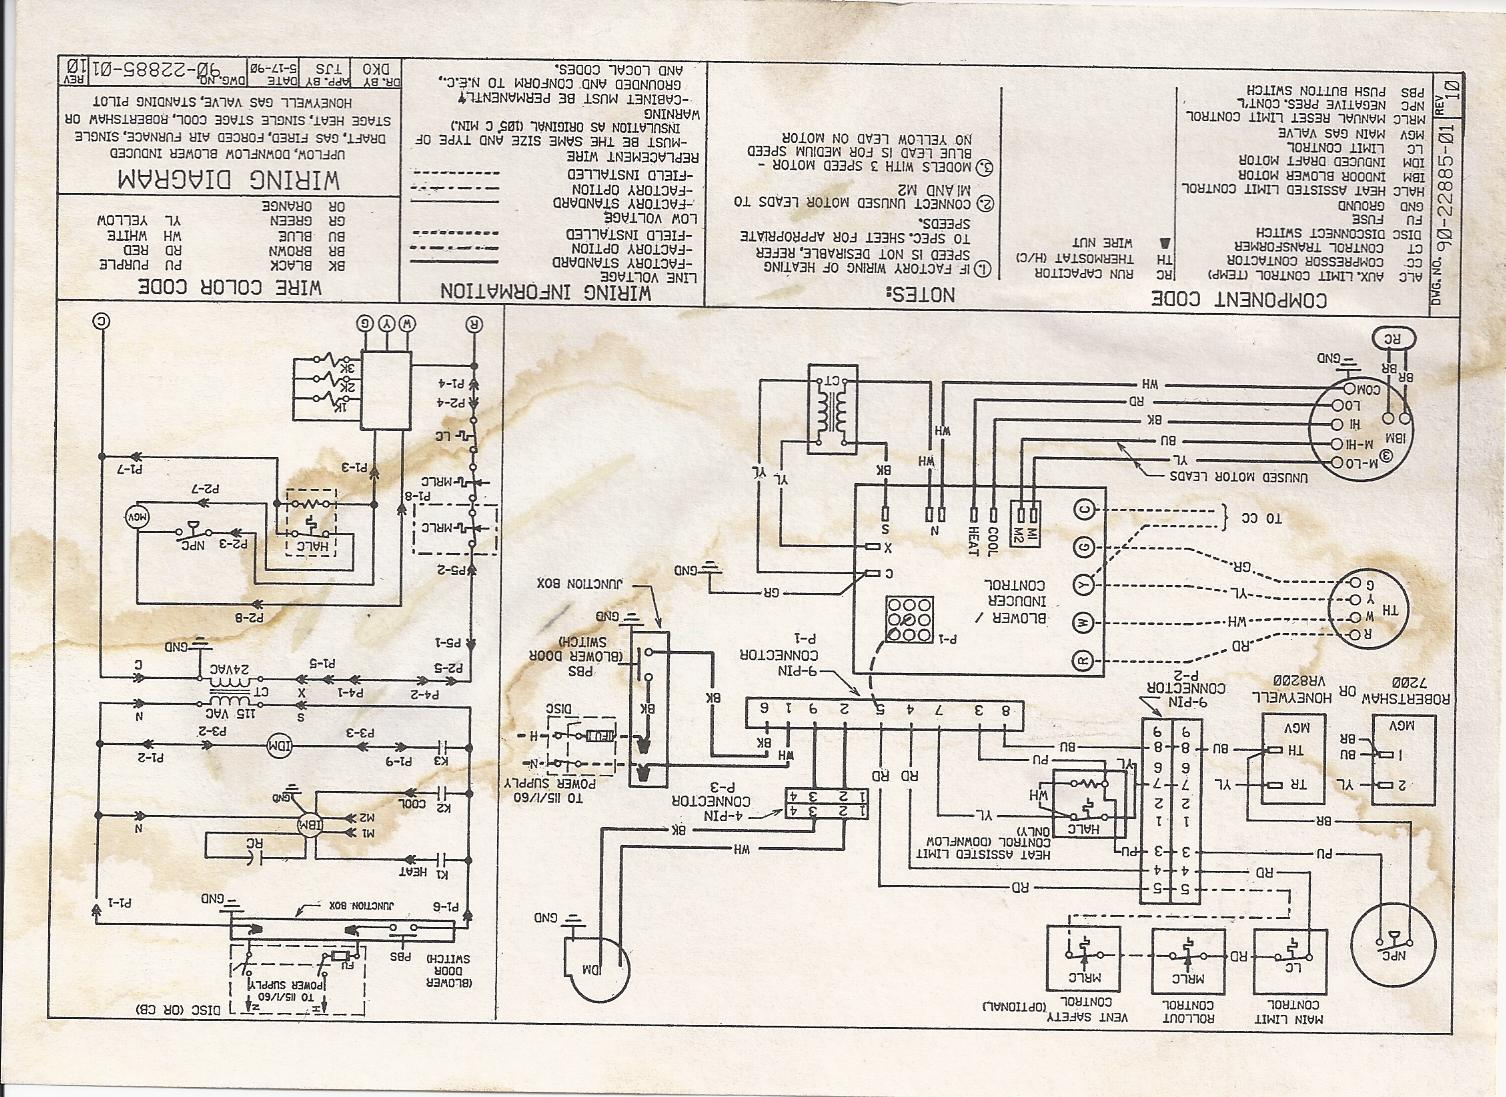 DOC] ➤ Diagram Old York Furnace Wiring Diagram Ebook ... York Electric Furnace Wiring Diagram on